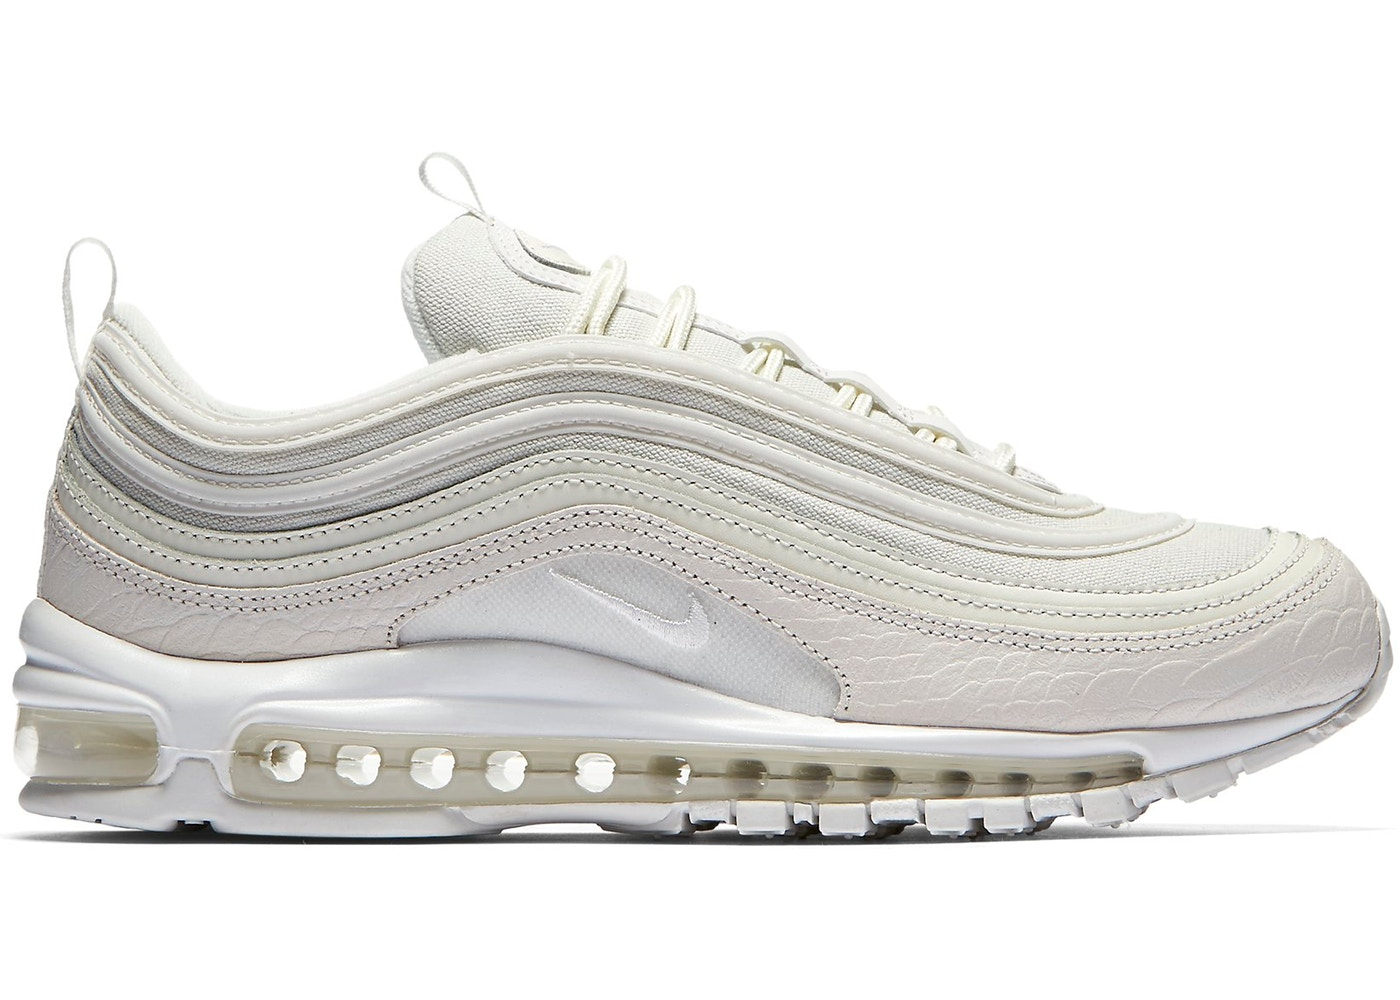 Nike x Skepta Air Max 97 UL 17 (Multi & Black) END.